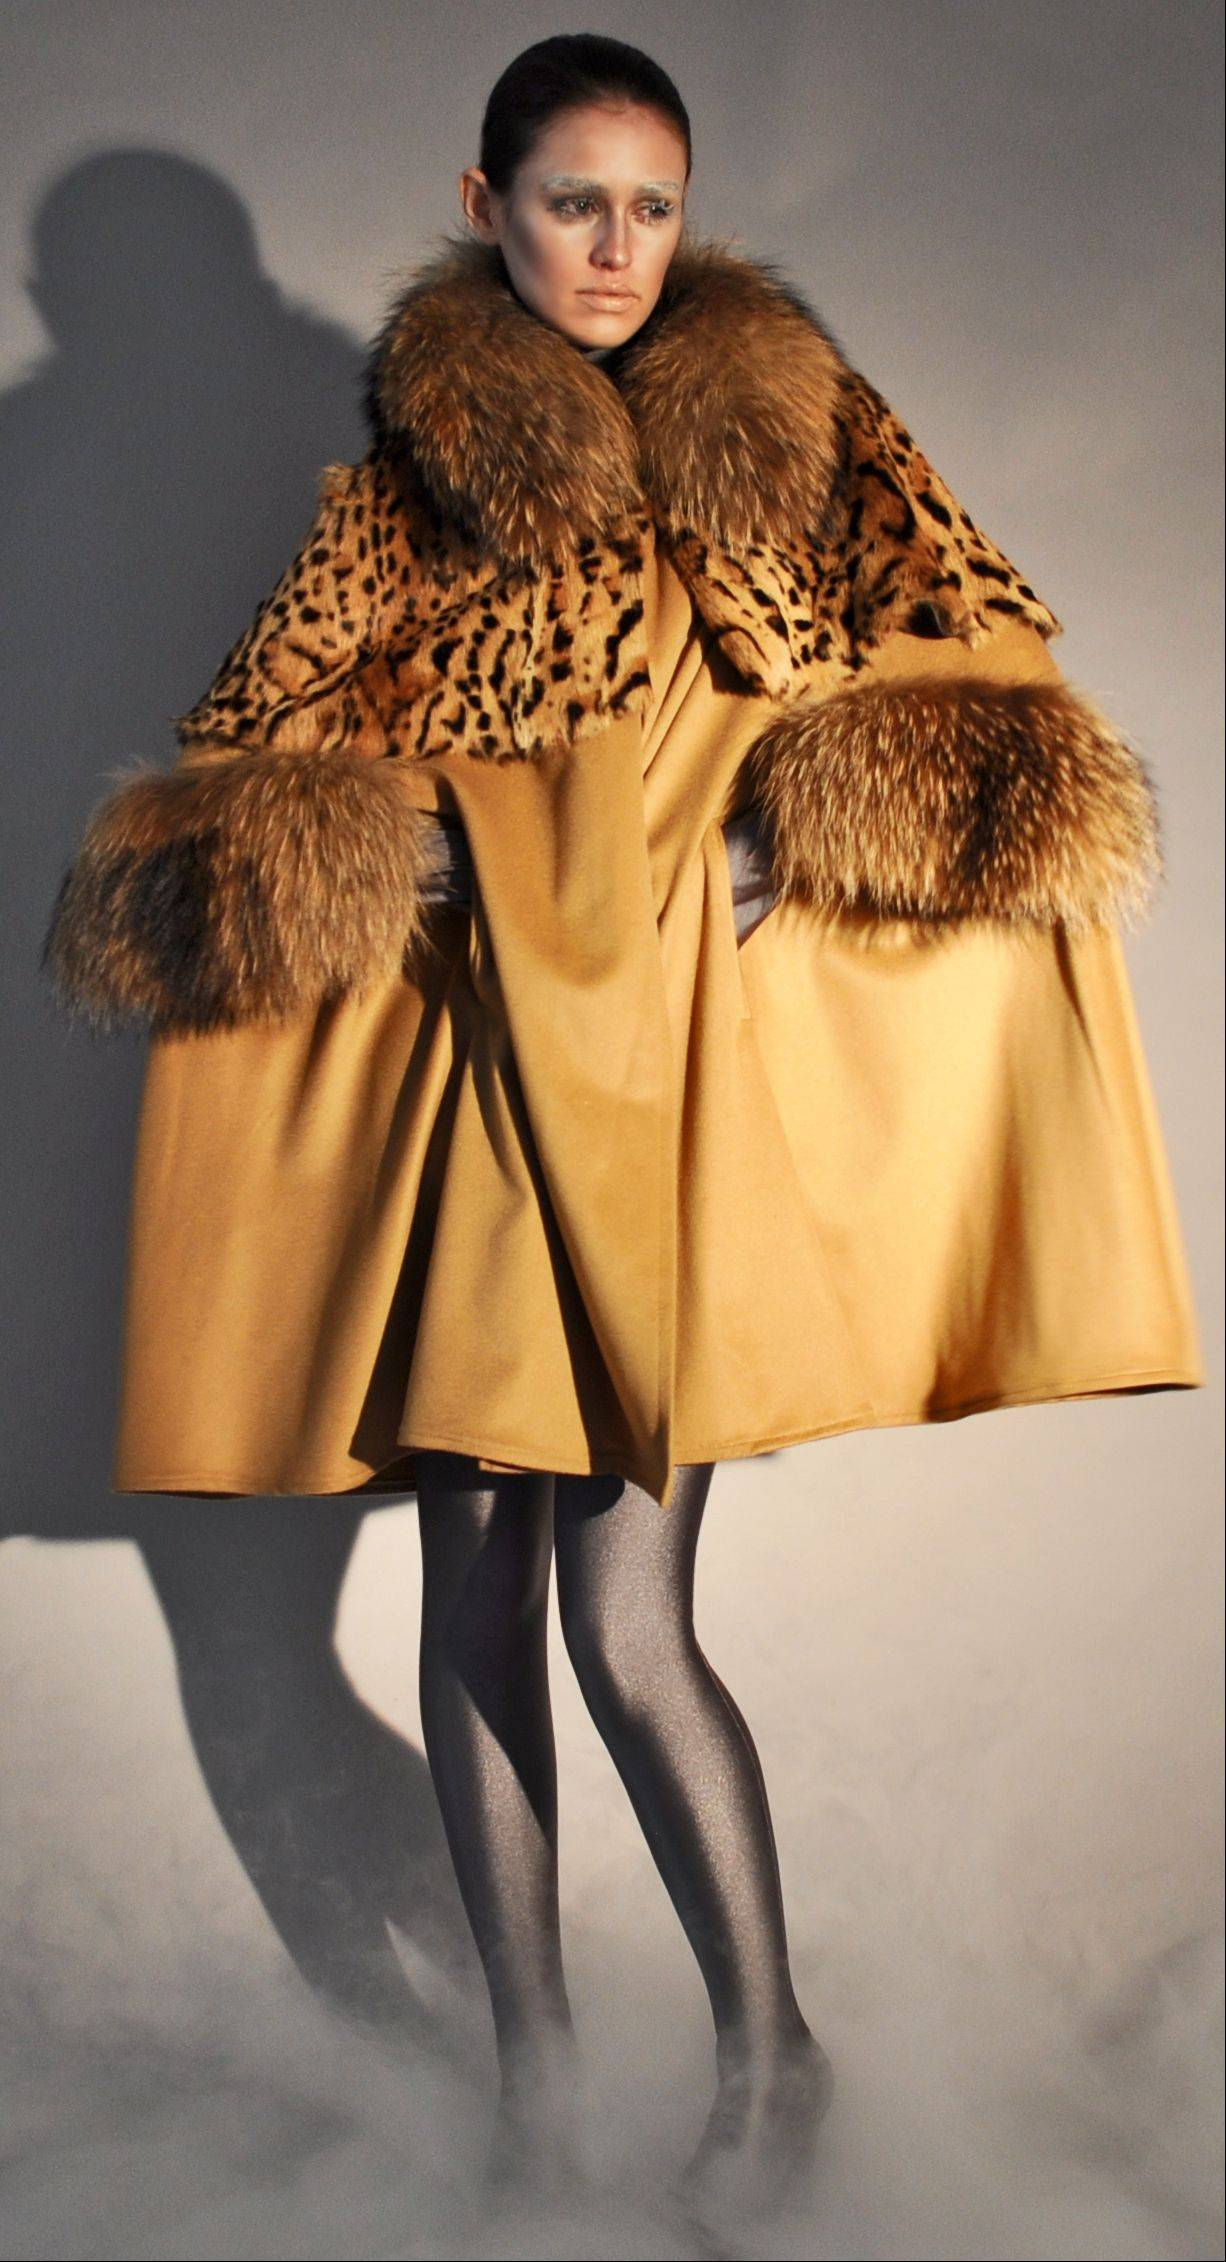 A camel cashmere cape coat with raccoon collar and raccoon arm holes, part of Adrienne Landau's fall 2011 collection,. Women's tastes are becoming more refined and younger customers are warming up to fur amid efforts to market pelts as more humane products.